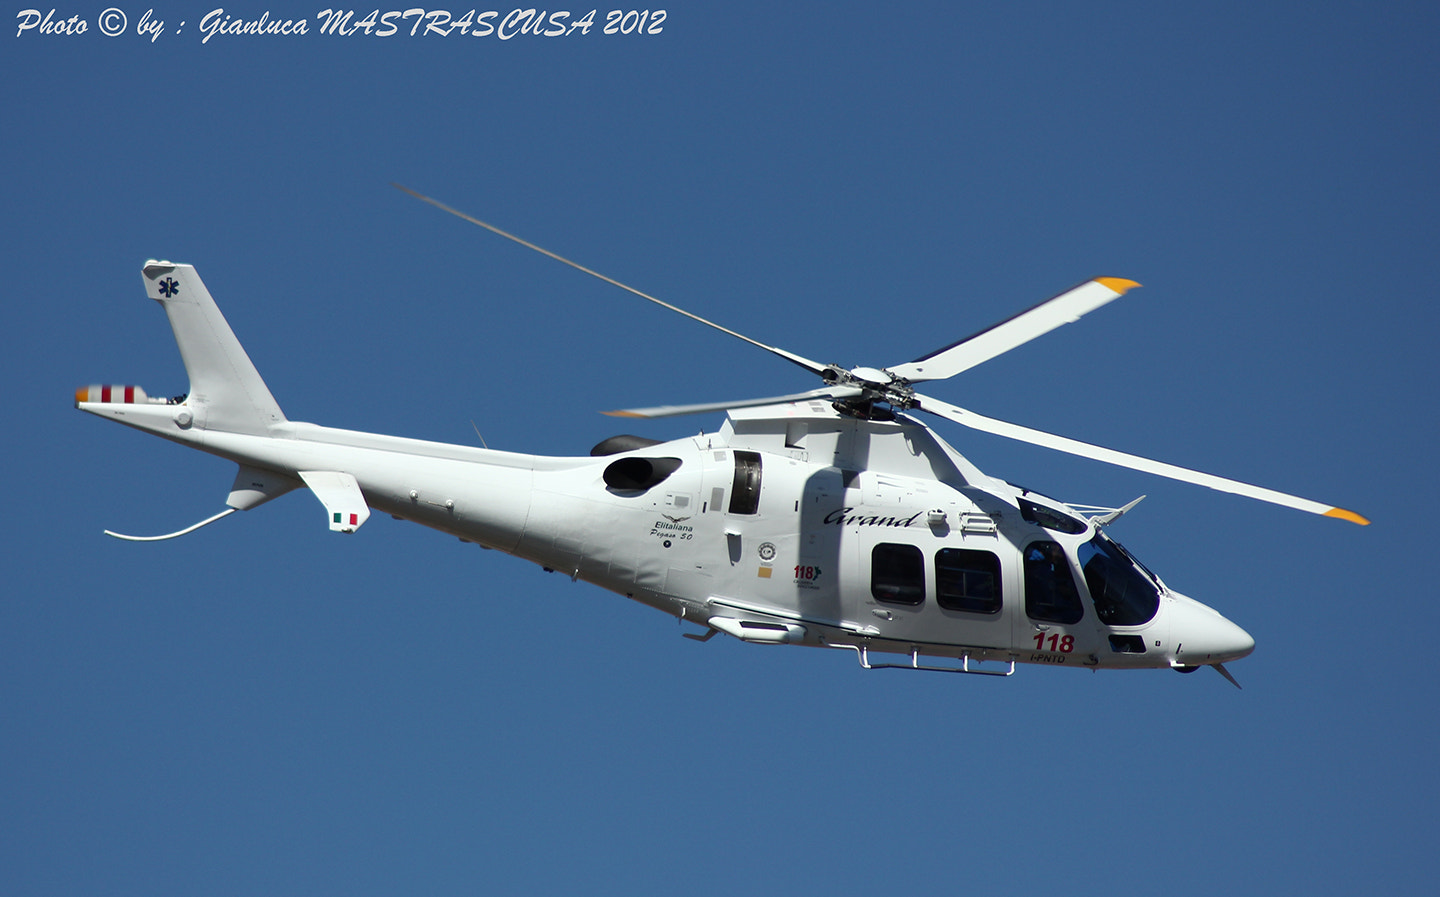 Photograph Agusta Westland AW109S Grand I-PNTD by Gianluca Mastrascusa on 500px